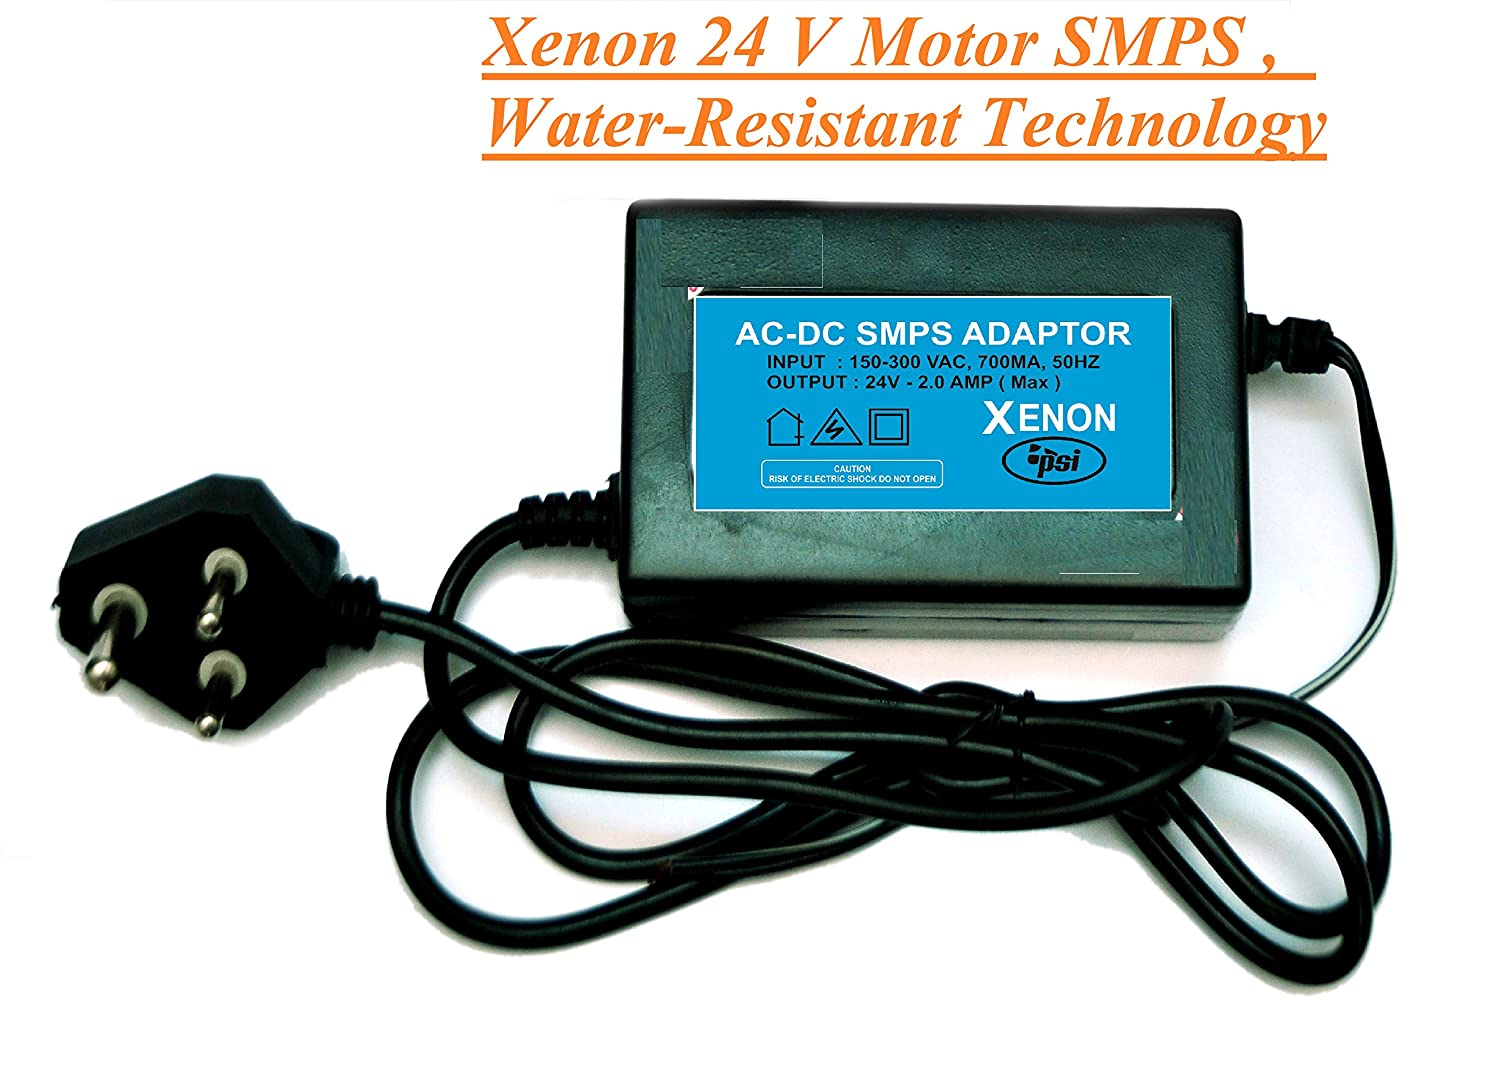 Psi Xenon - Heavy Duty RO Water Purifier Smps Adapter 24v/2amps ...